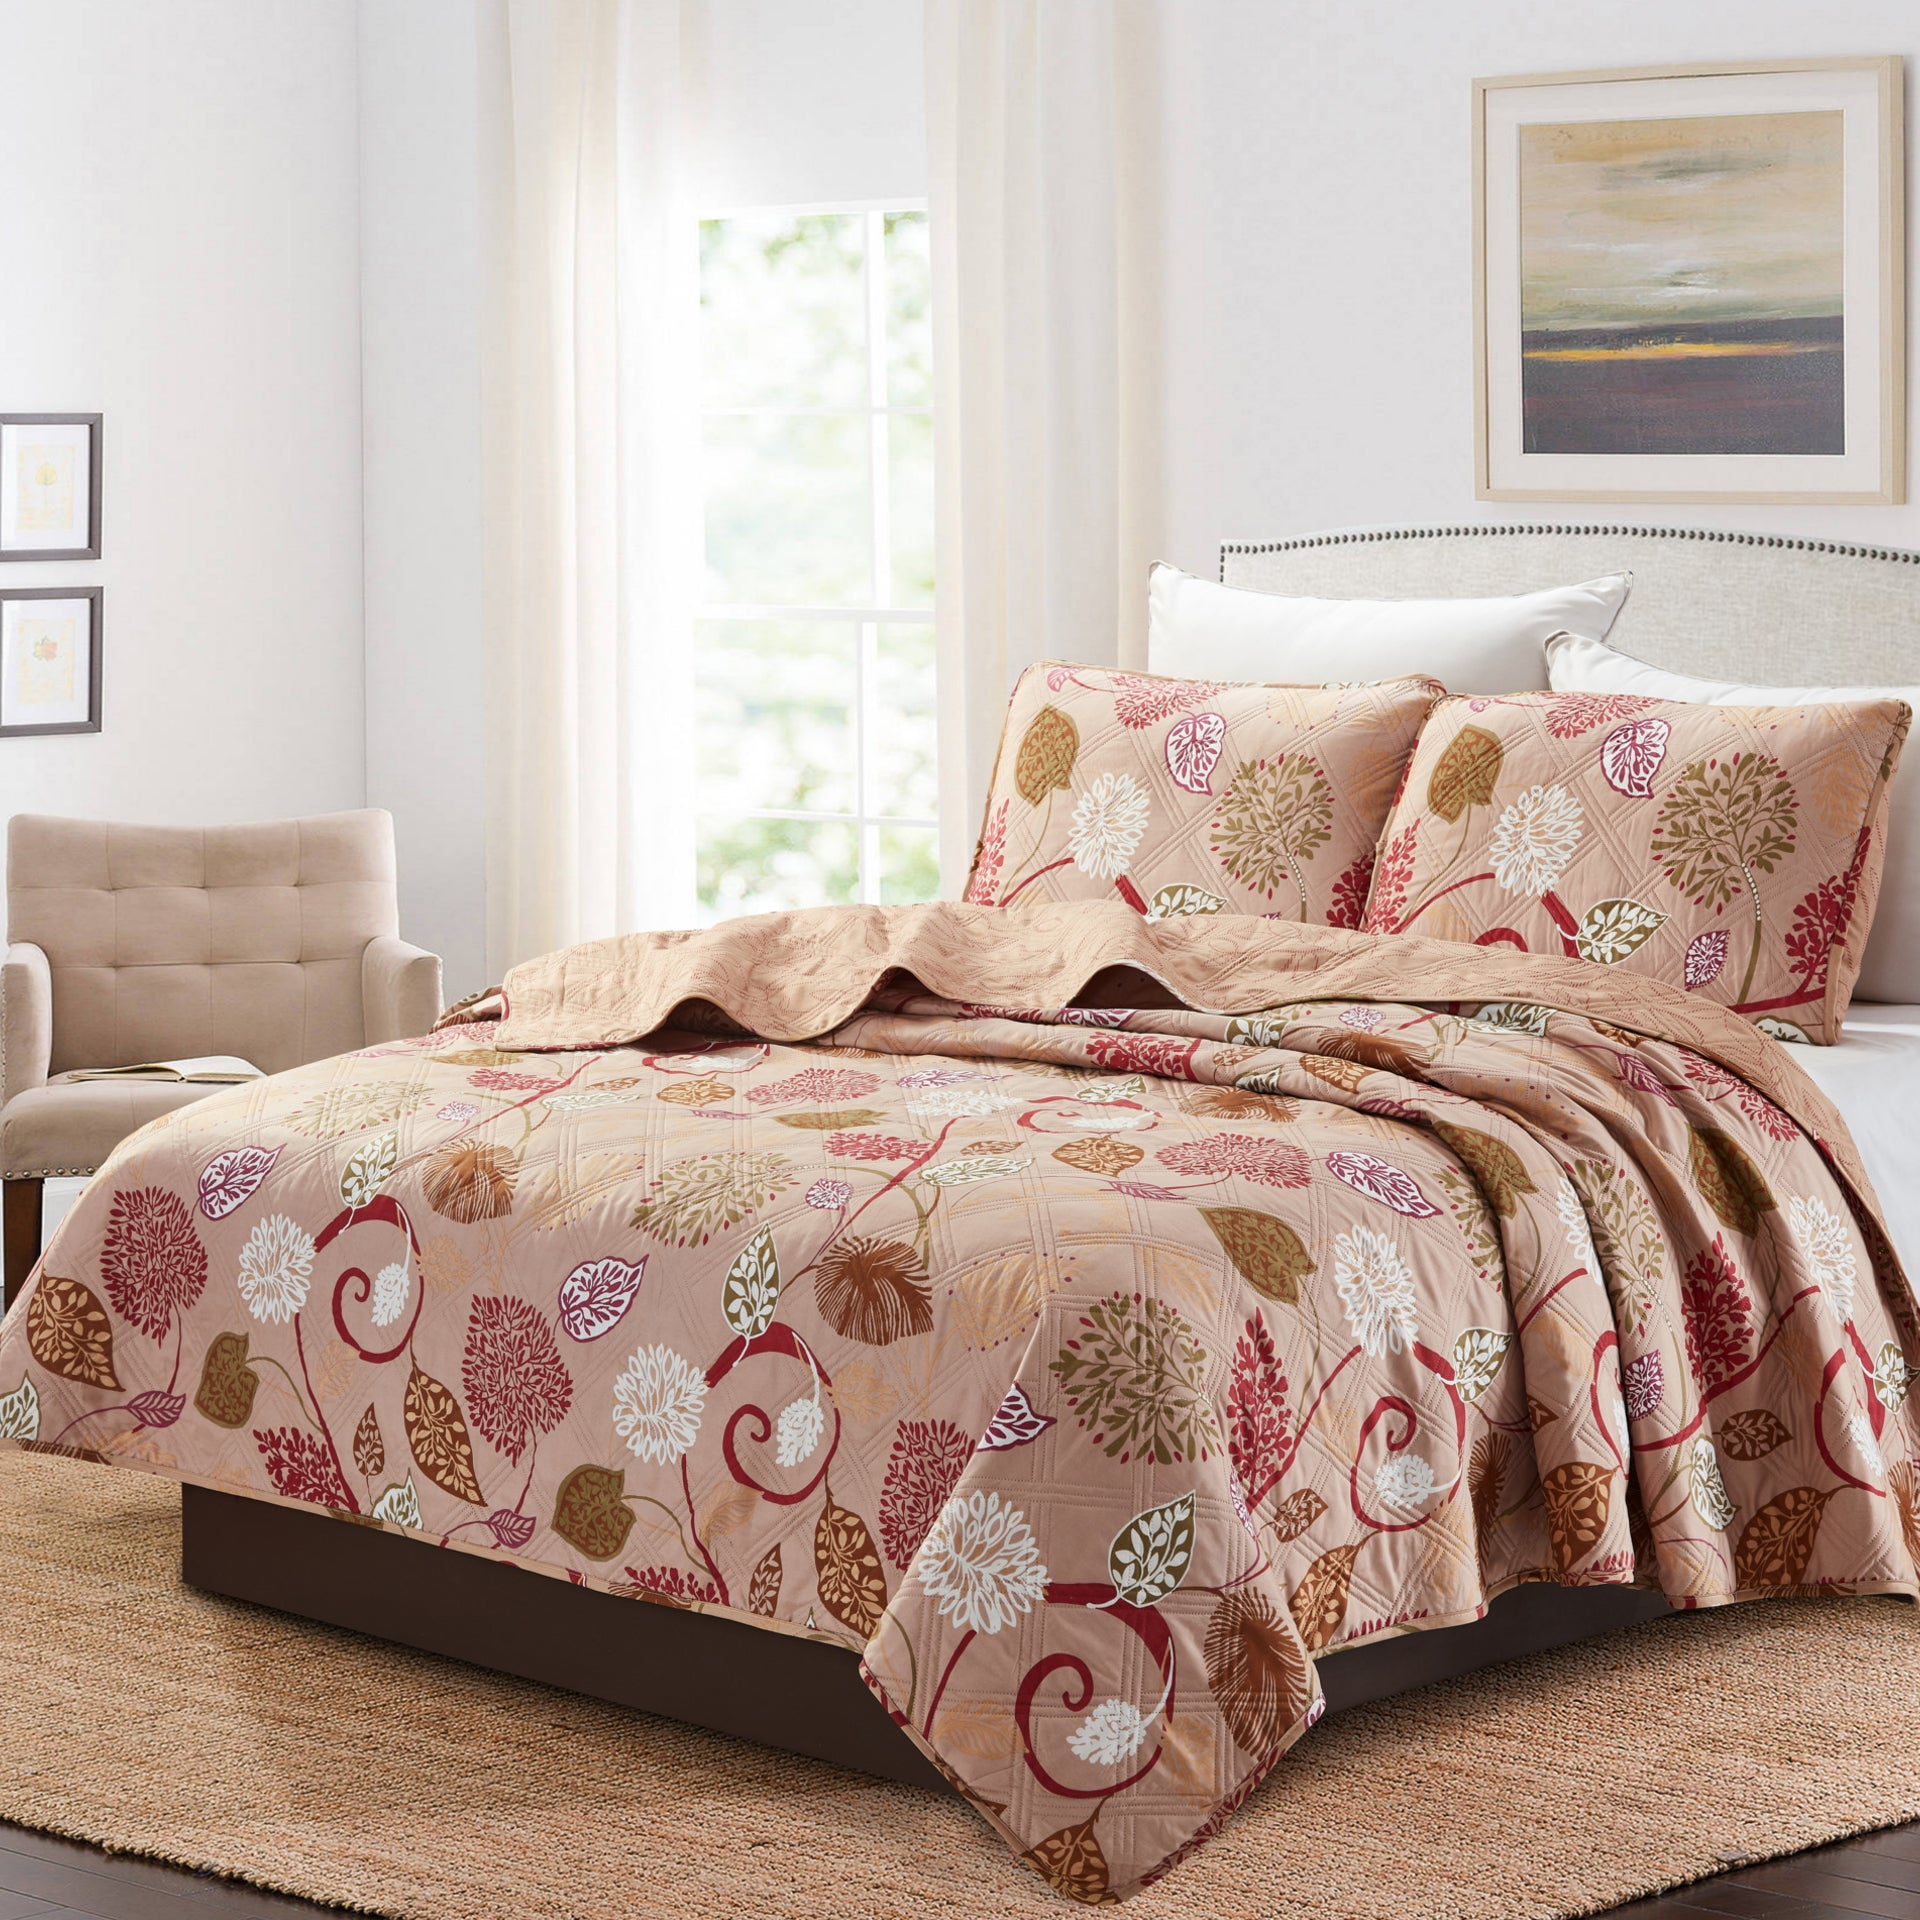 Juliet 3 Piece Quilt Set - Burgundy - Glory Home Design